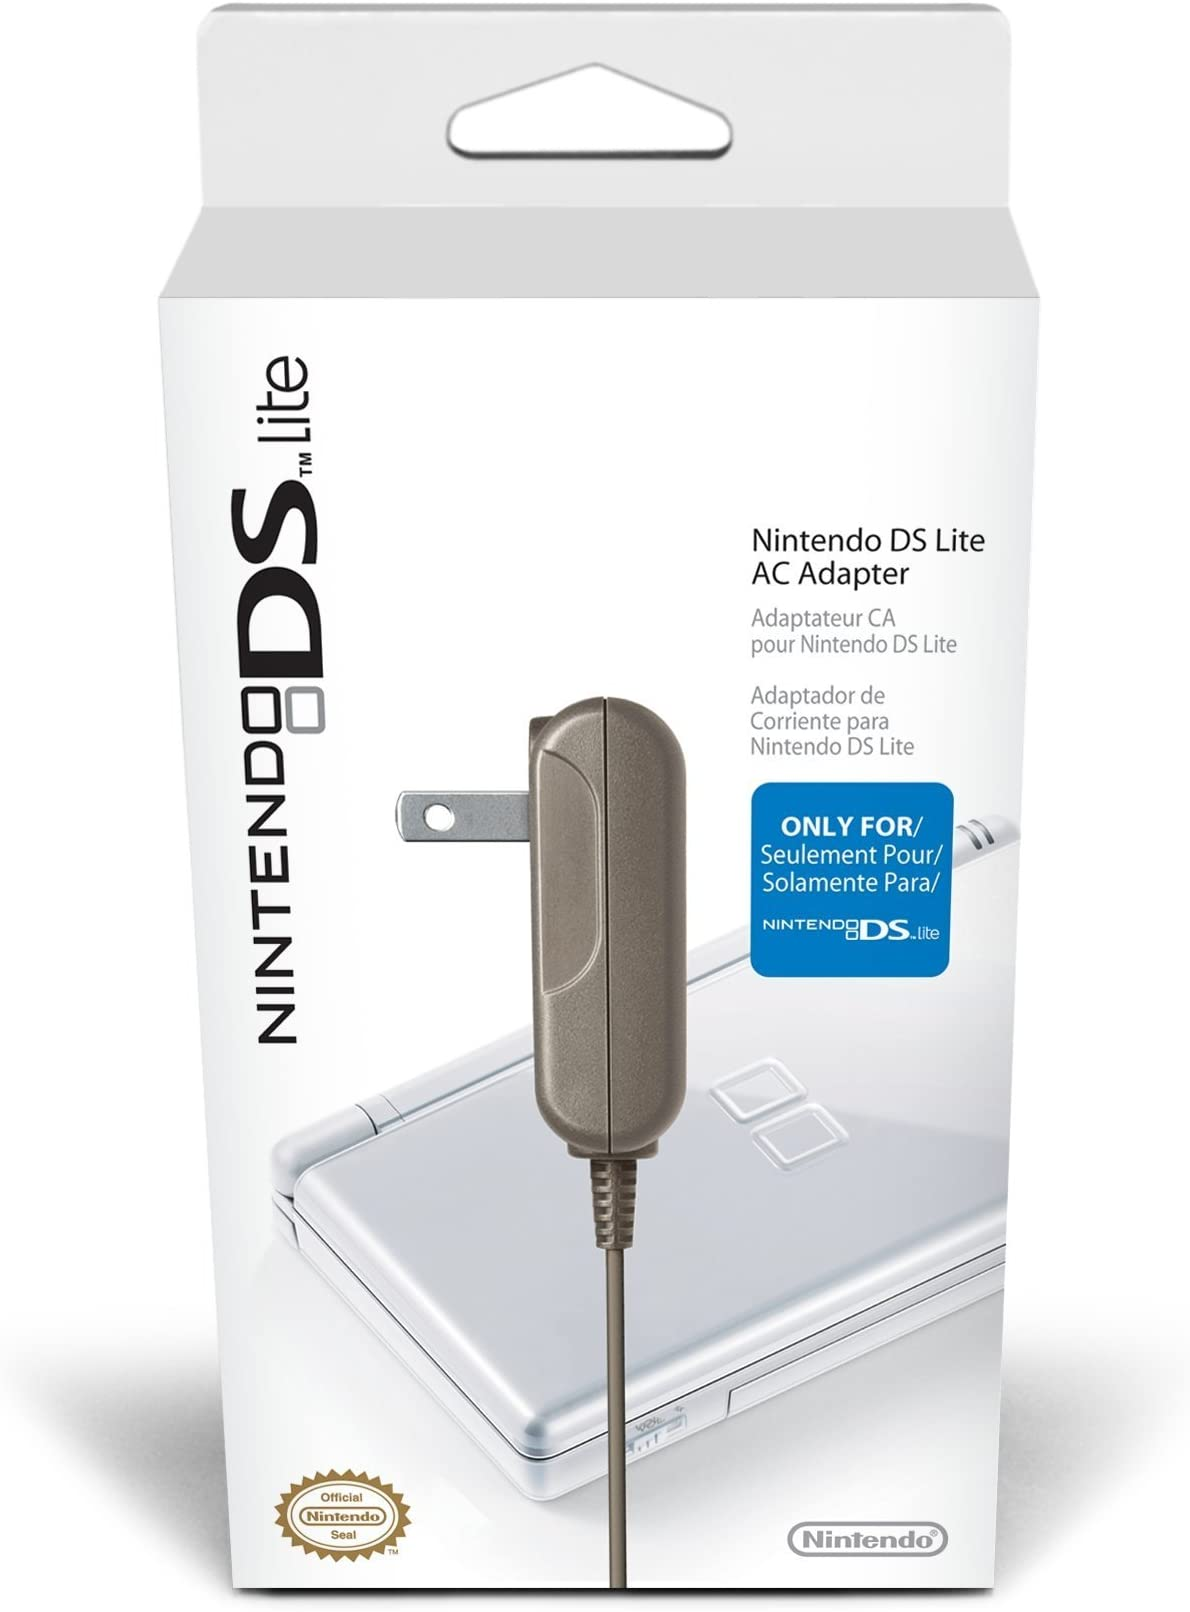 Amazon.com: Nintendo DS Lite AC Adapter: Artist Not Provided ...